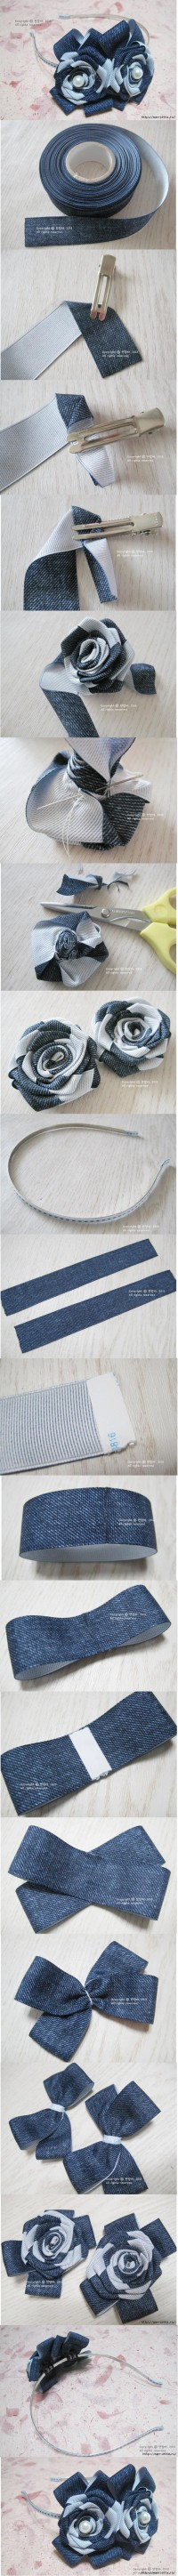 DIY Herringbone Ribbon Roses DIY Projects | UsefulDIY.com